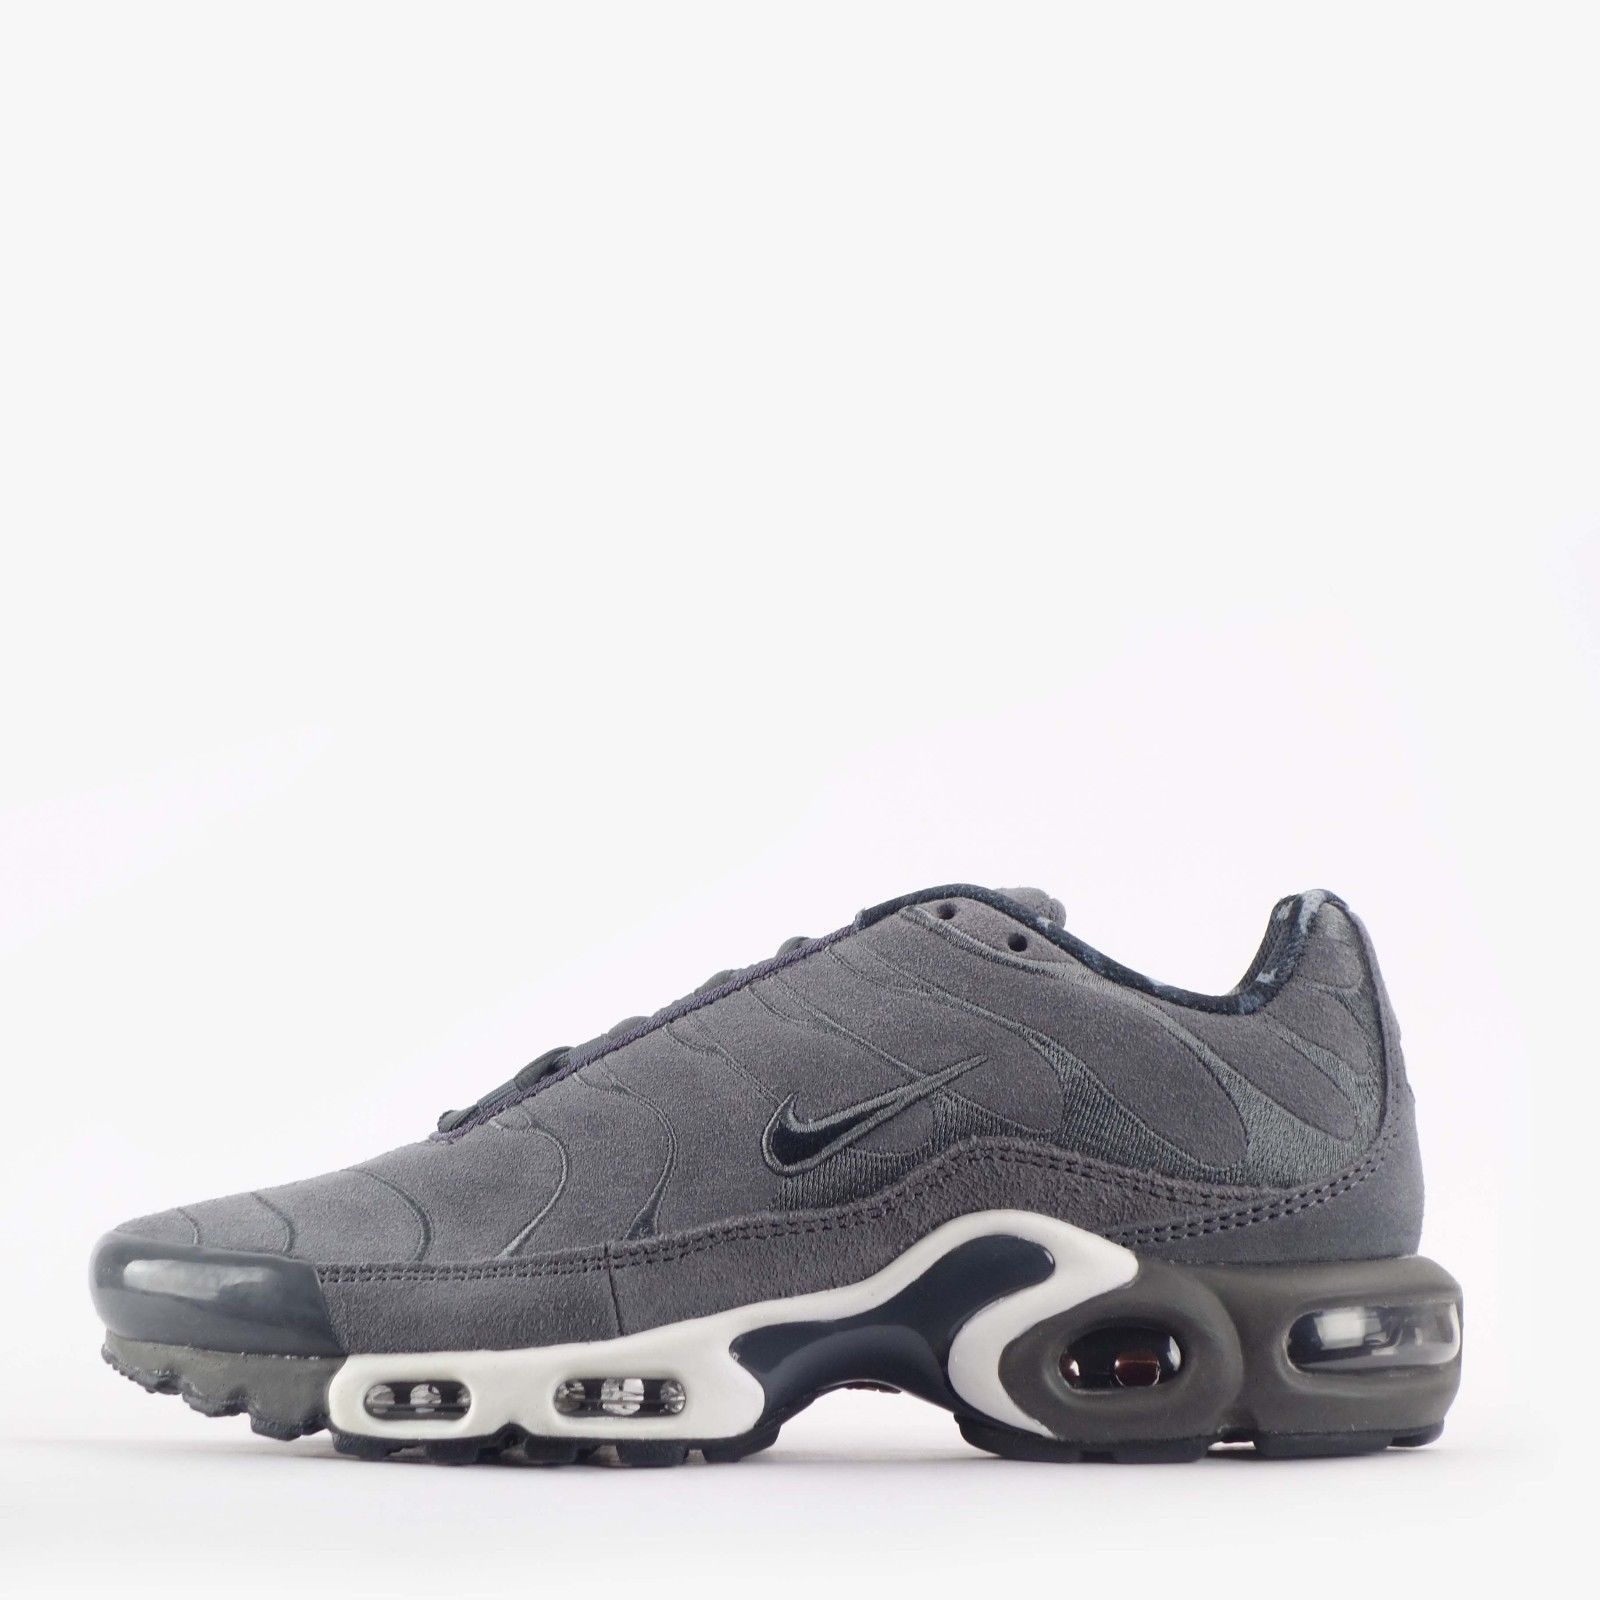 the best attitude e2571 f855b Nike Air Max Plus Premium Tuned TN Suede Mens Shoes In Dark Grey in  Clothes, Shoes   Accessories, Men s Shoes, Trainers   eBay